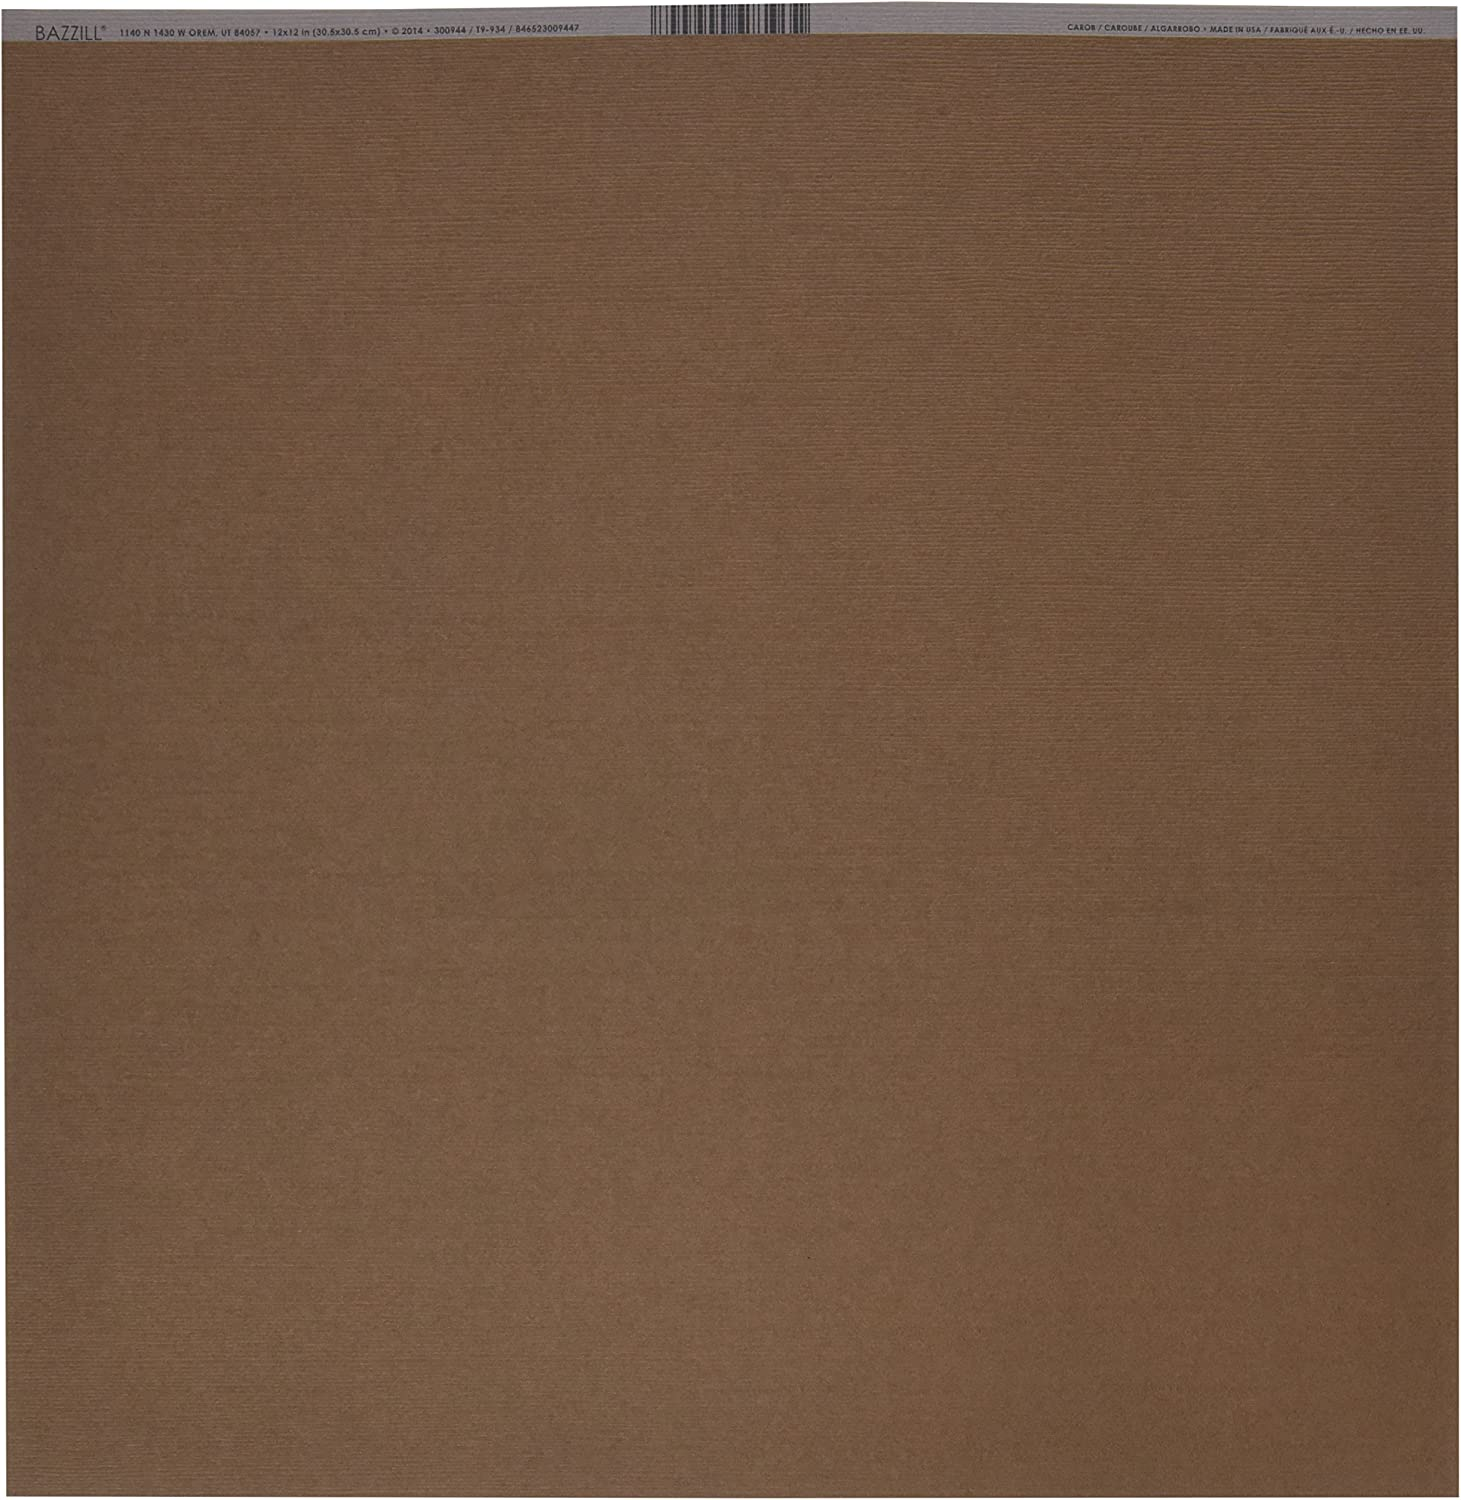 """Bazzill Fourz Cardstock 12/""""X12/""""-Fussy//Grasscloth 25 Pack"""